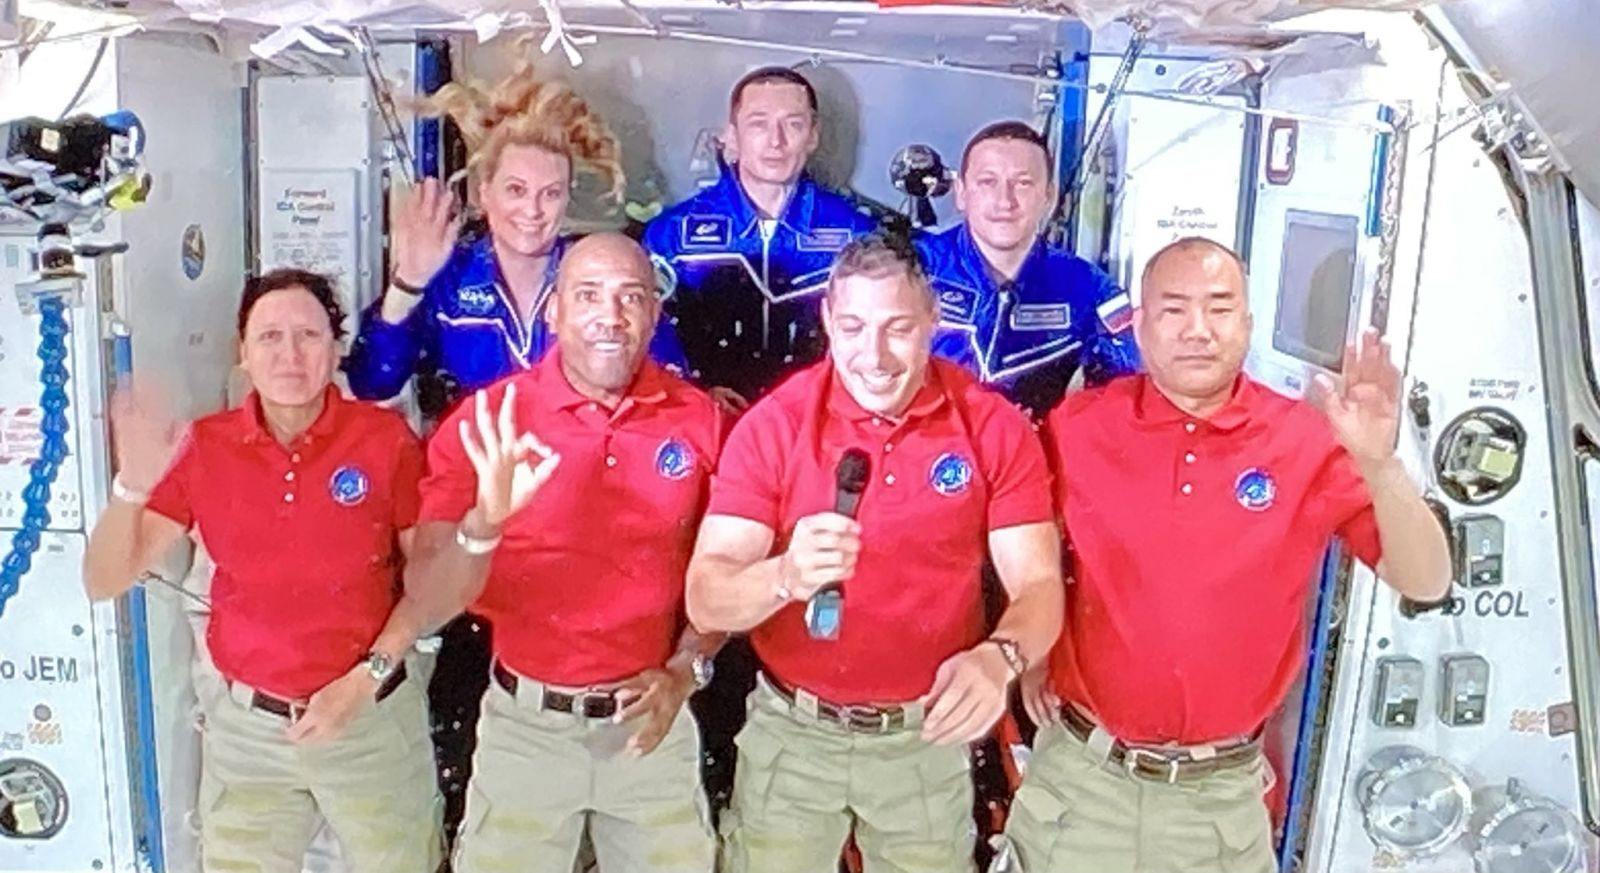 The full Expedition 64 crew. Top row from left to right: NASA's Kate Rubins and Russia's Sergey Ryzhikov and Sergey Kud-Sverchkov. Bottom row from left to right: NASA's Shannon Walker, Victor Glover and Michael Hopkins, and Japan's Soichi Noguchi. Credit: NASA